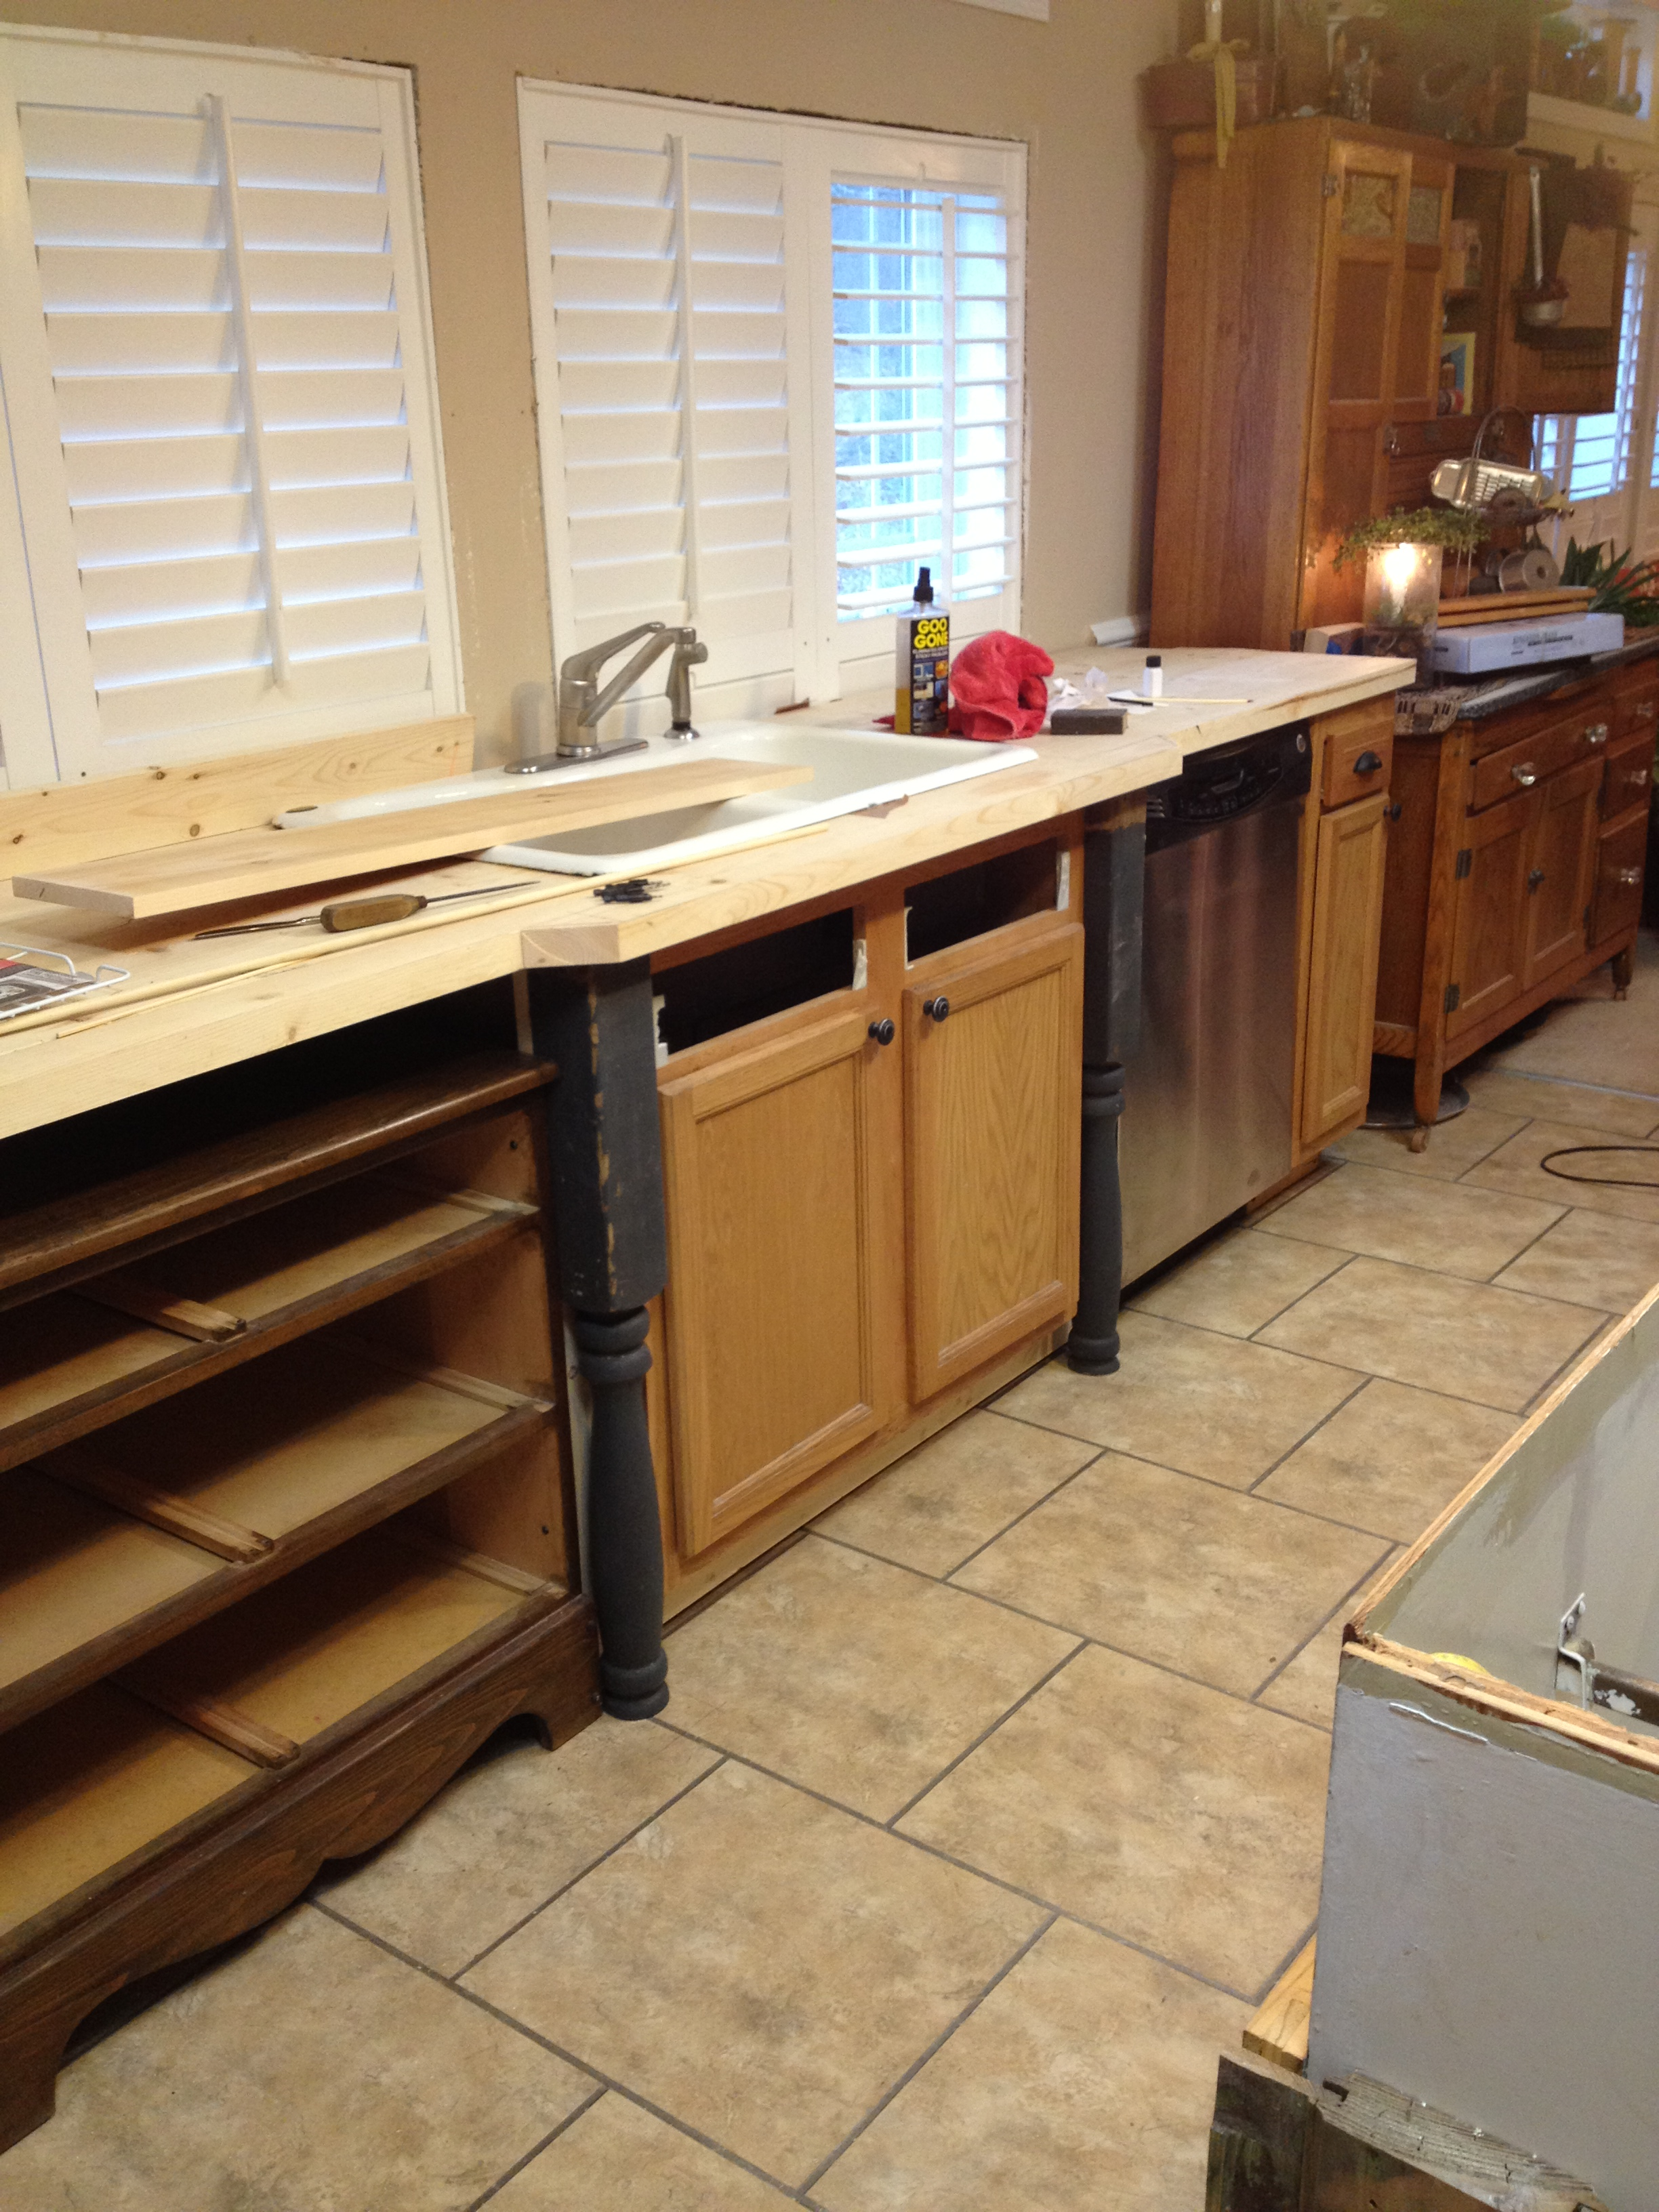 How To Paint Kitchen Cabinets In Mobile Home Old World Manufactured Home Kitchen Remodel